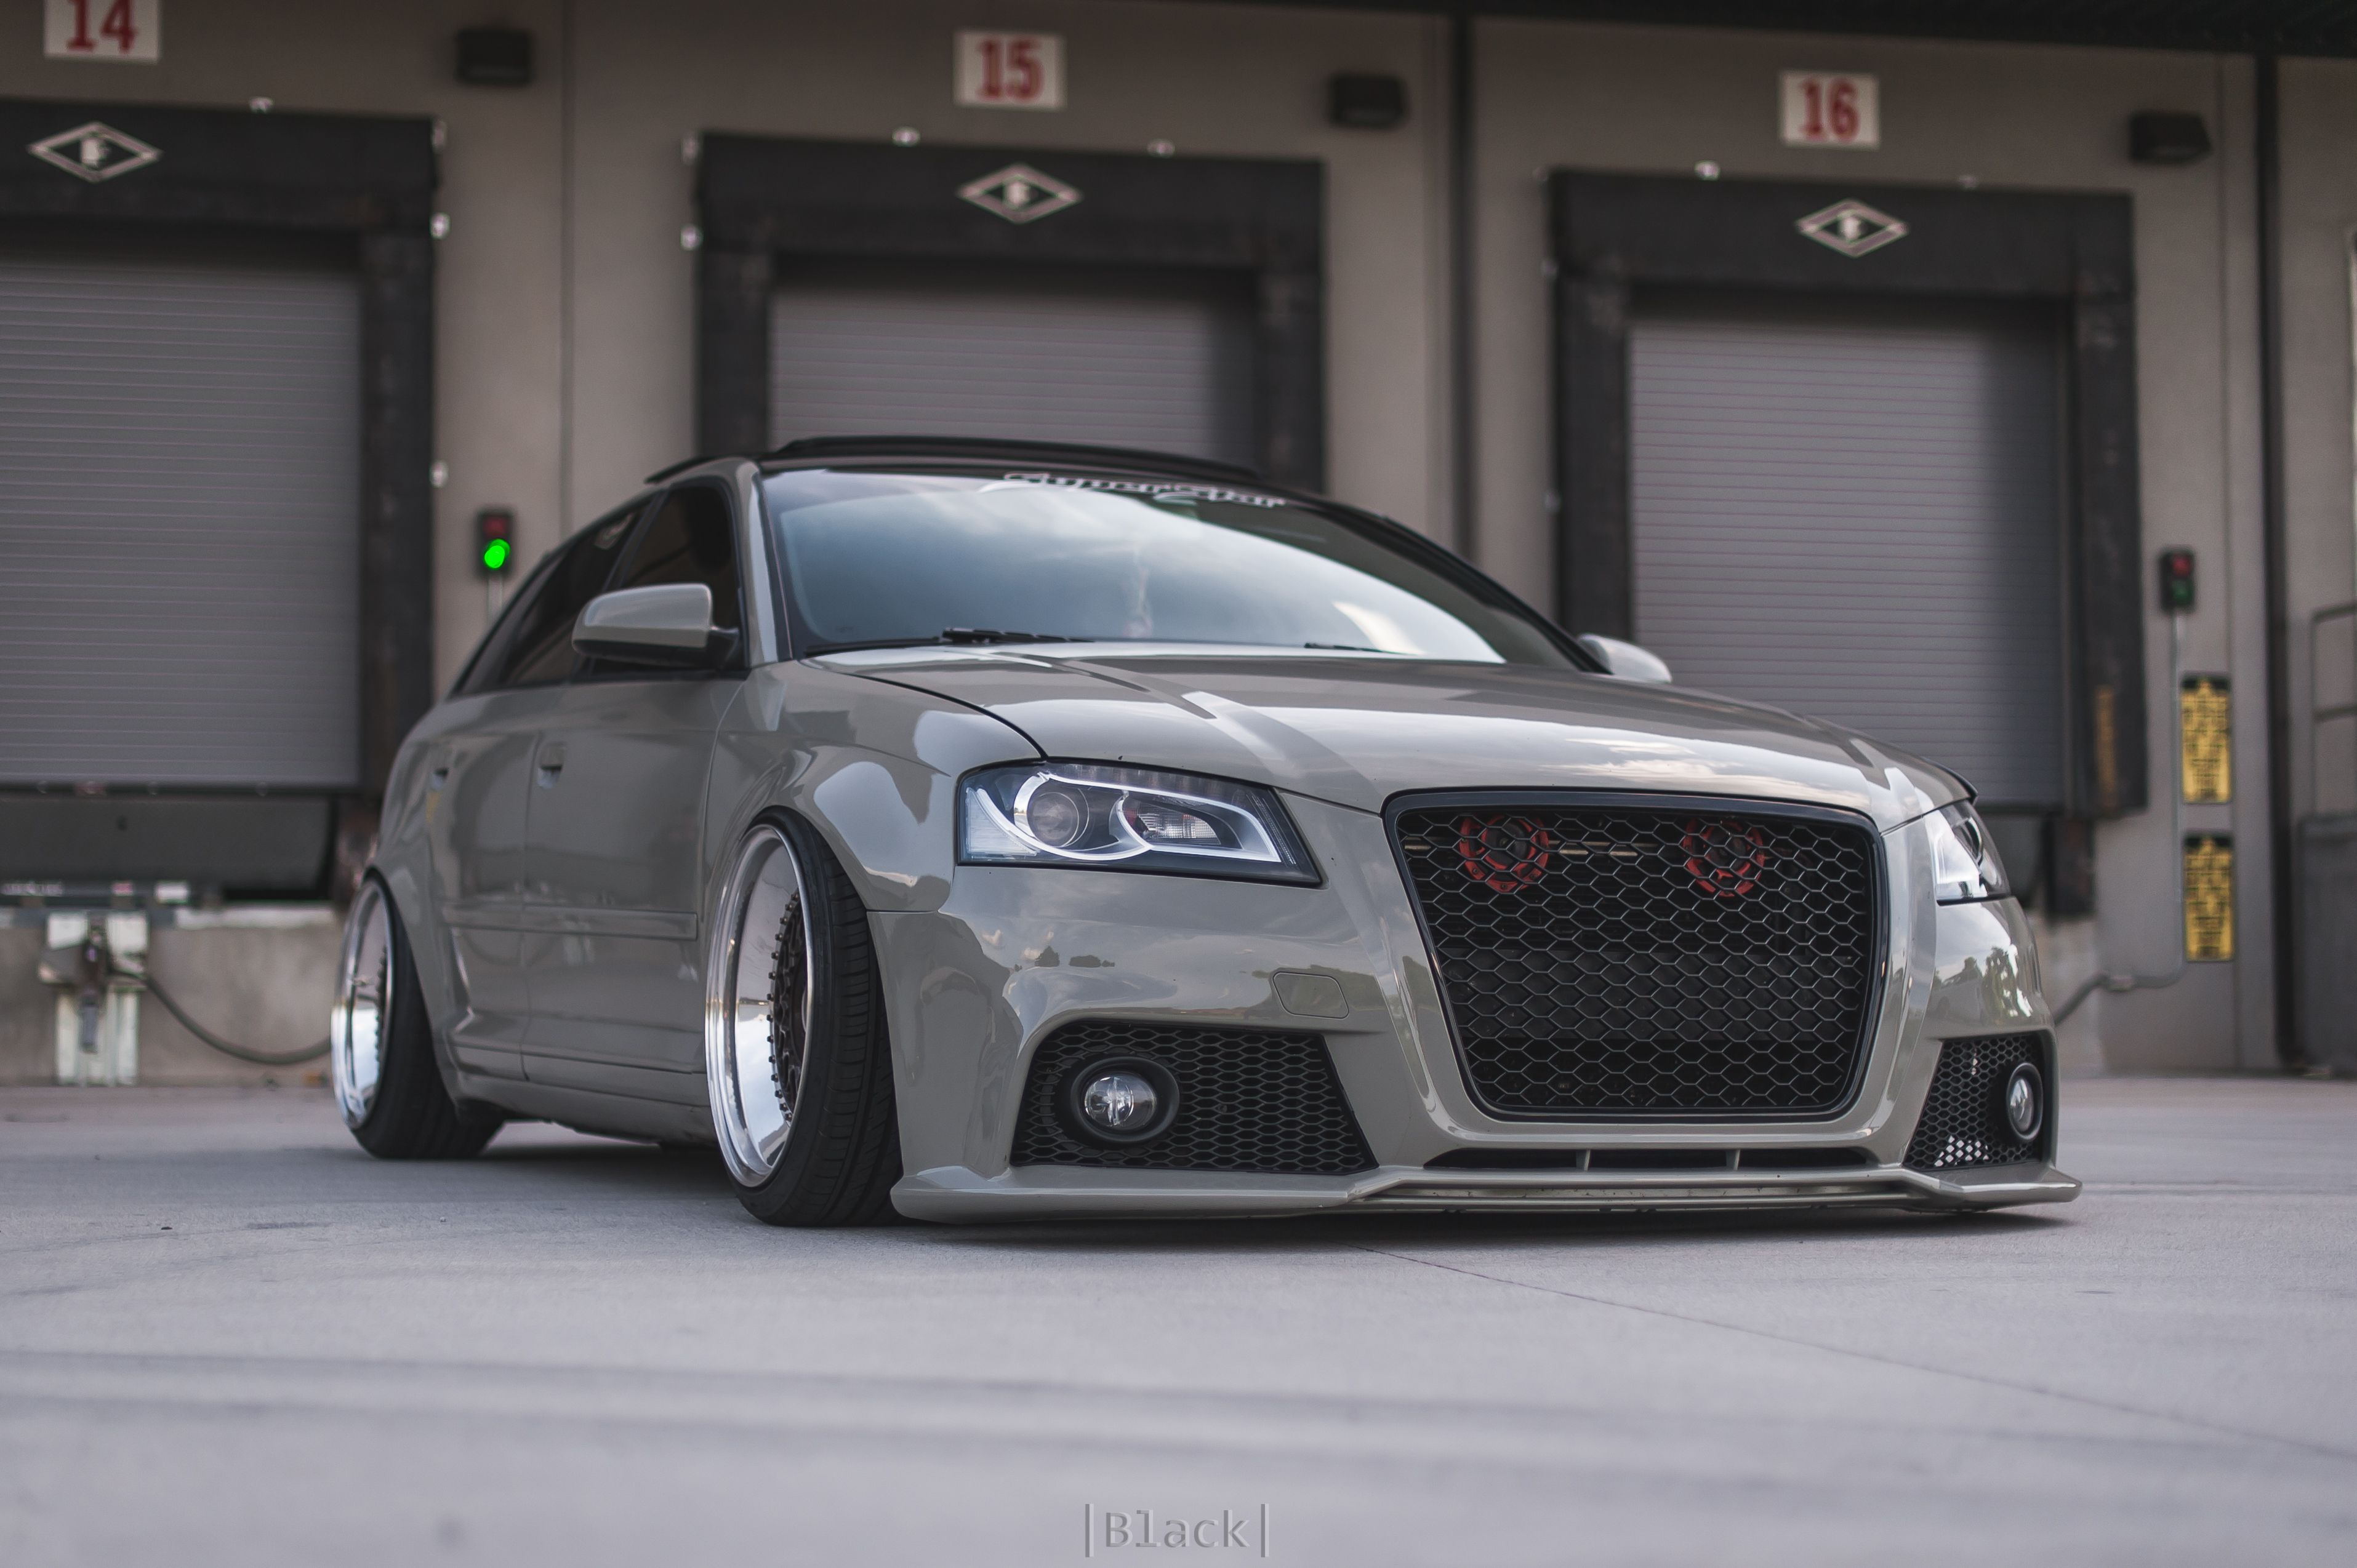 stanced out bagged up audi a3 sportback 8p with bbs rs wheels rh pinterest com